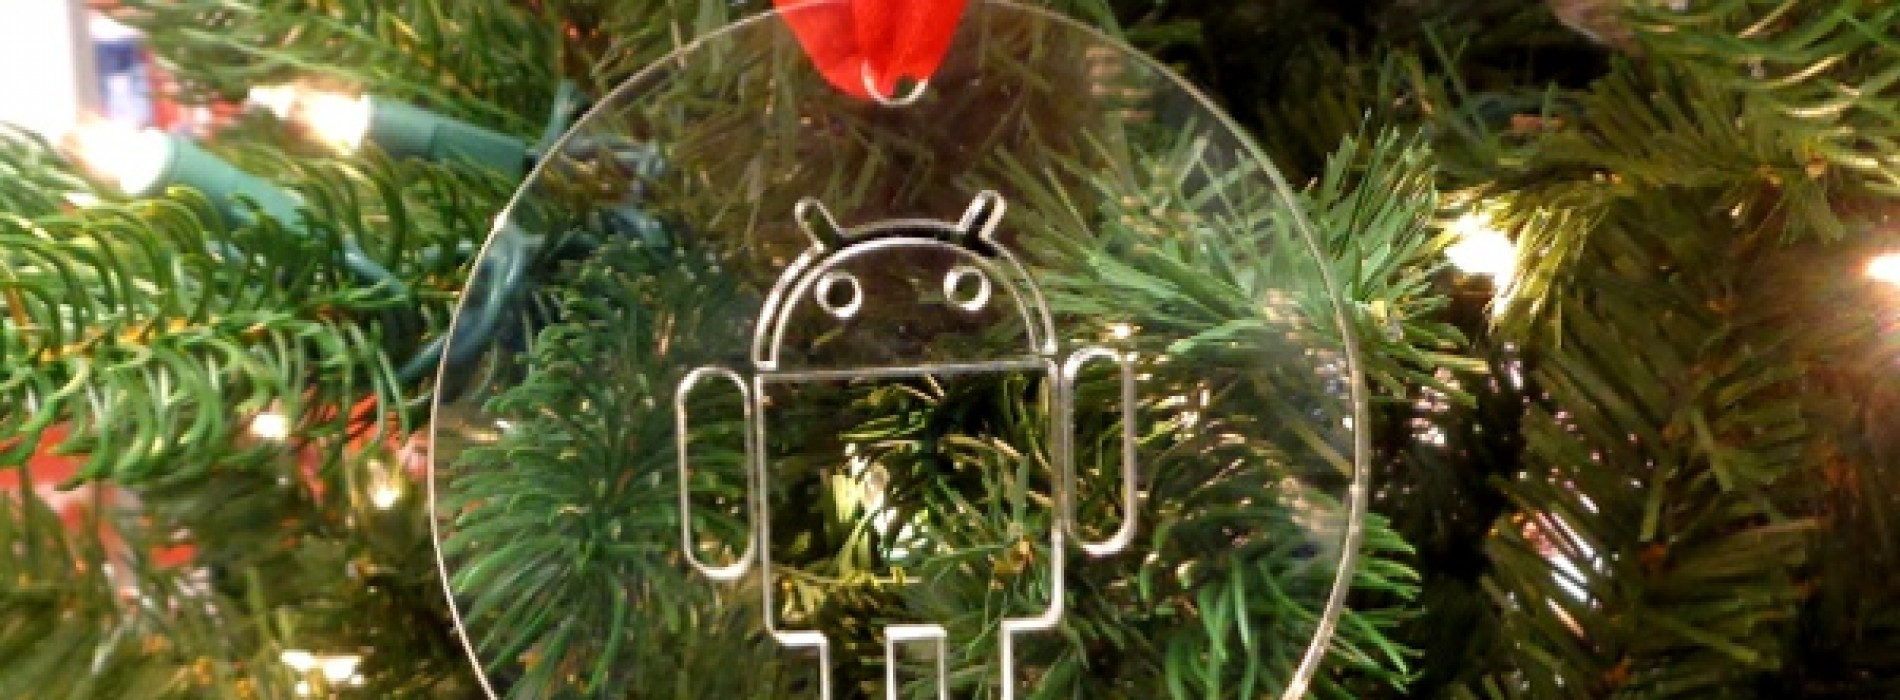 Deck your halls with an Android ornament from newPCgadgets